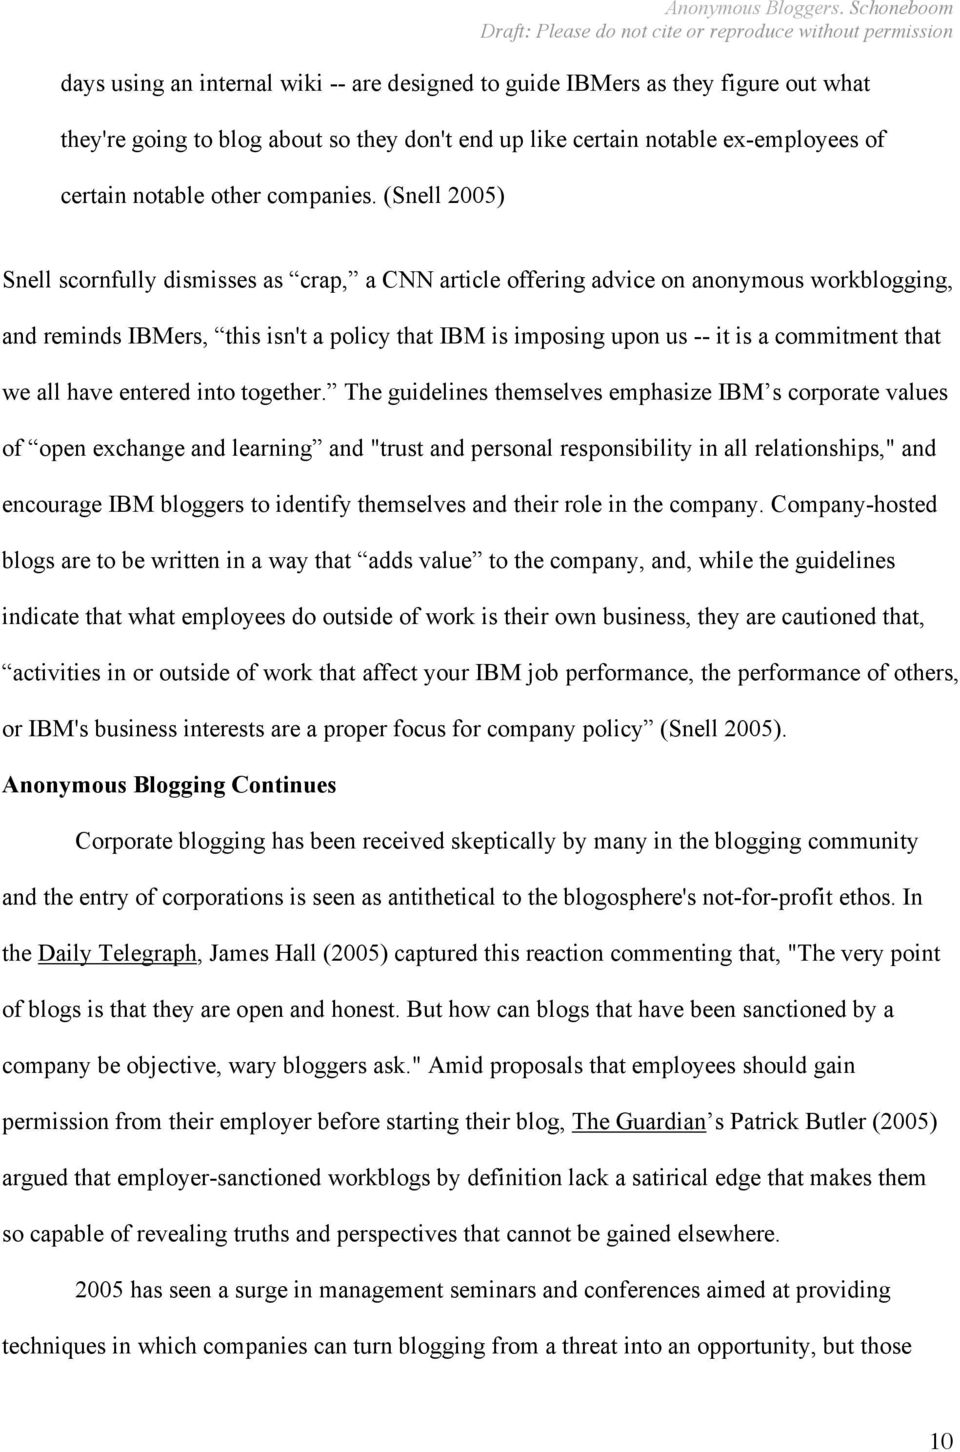 (Snell 2005) Snell scornfully dismisses as crap, a CNN article offering advice on anonymous workblogging, and reminds IBMers, this isn't a policy that IBM is imposing upon us -- it is a commitment